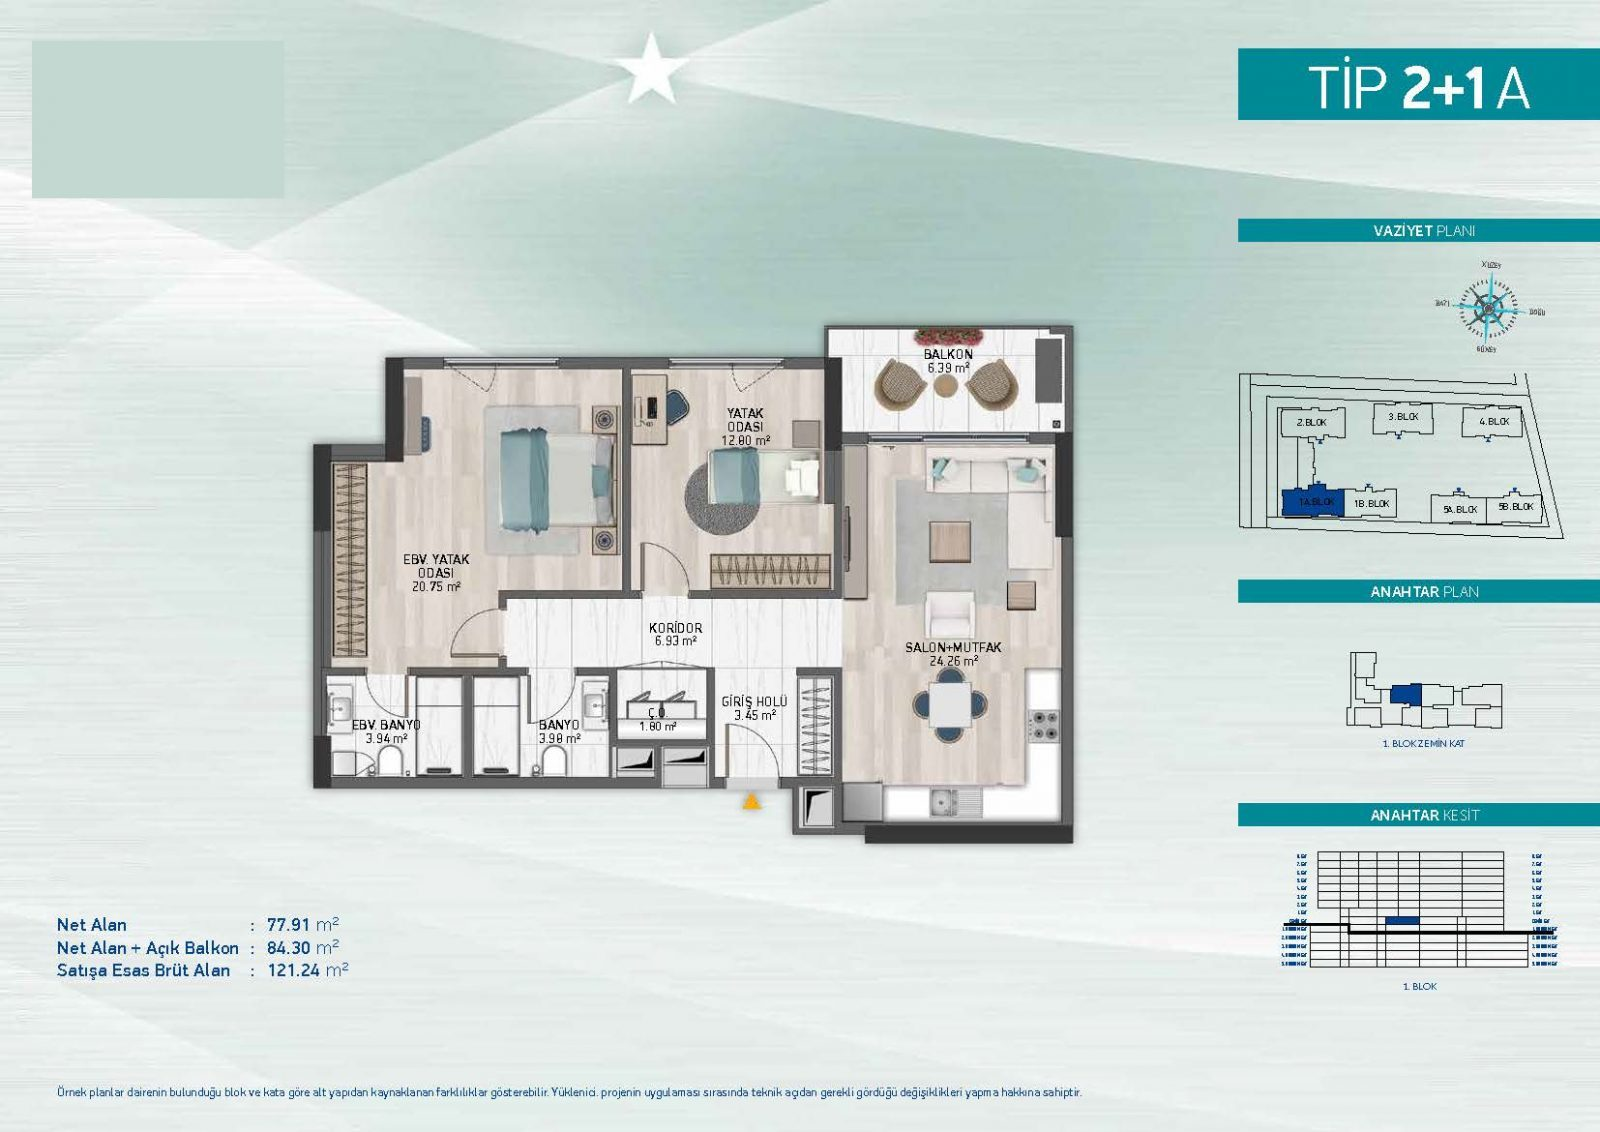 A project that integrates quality with your life in a wonderful architectural mold